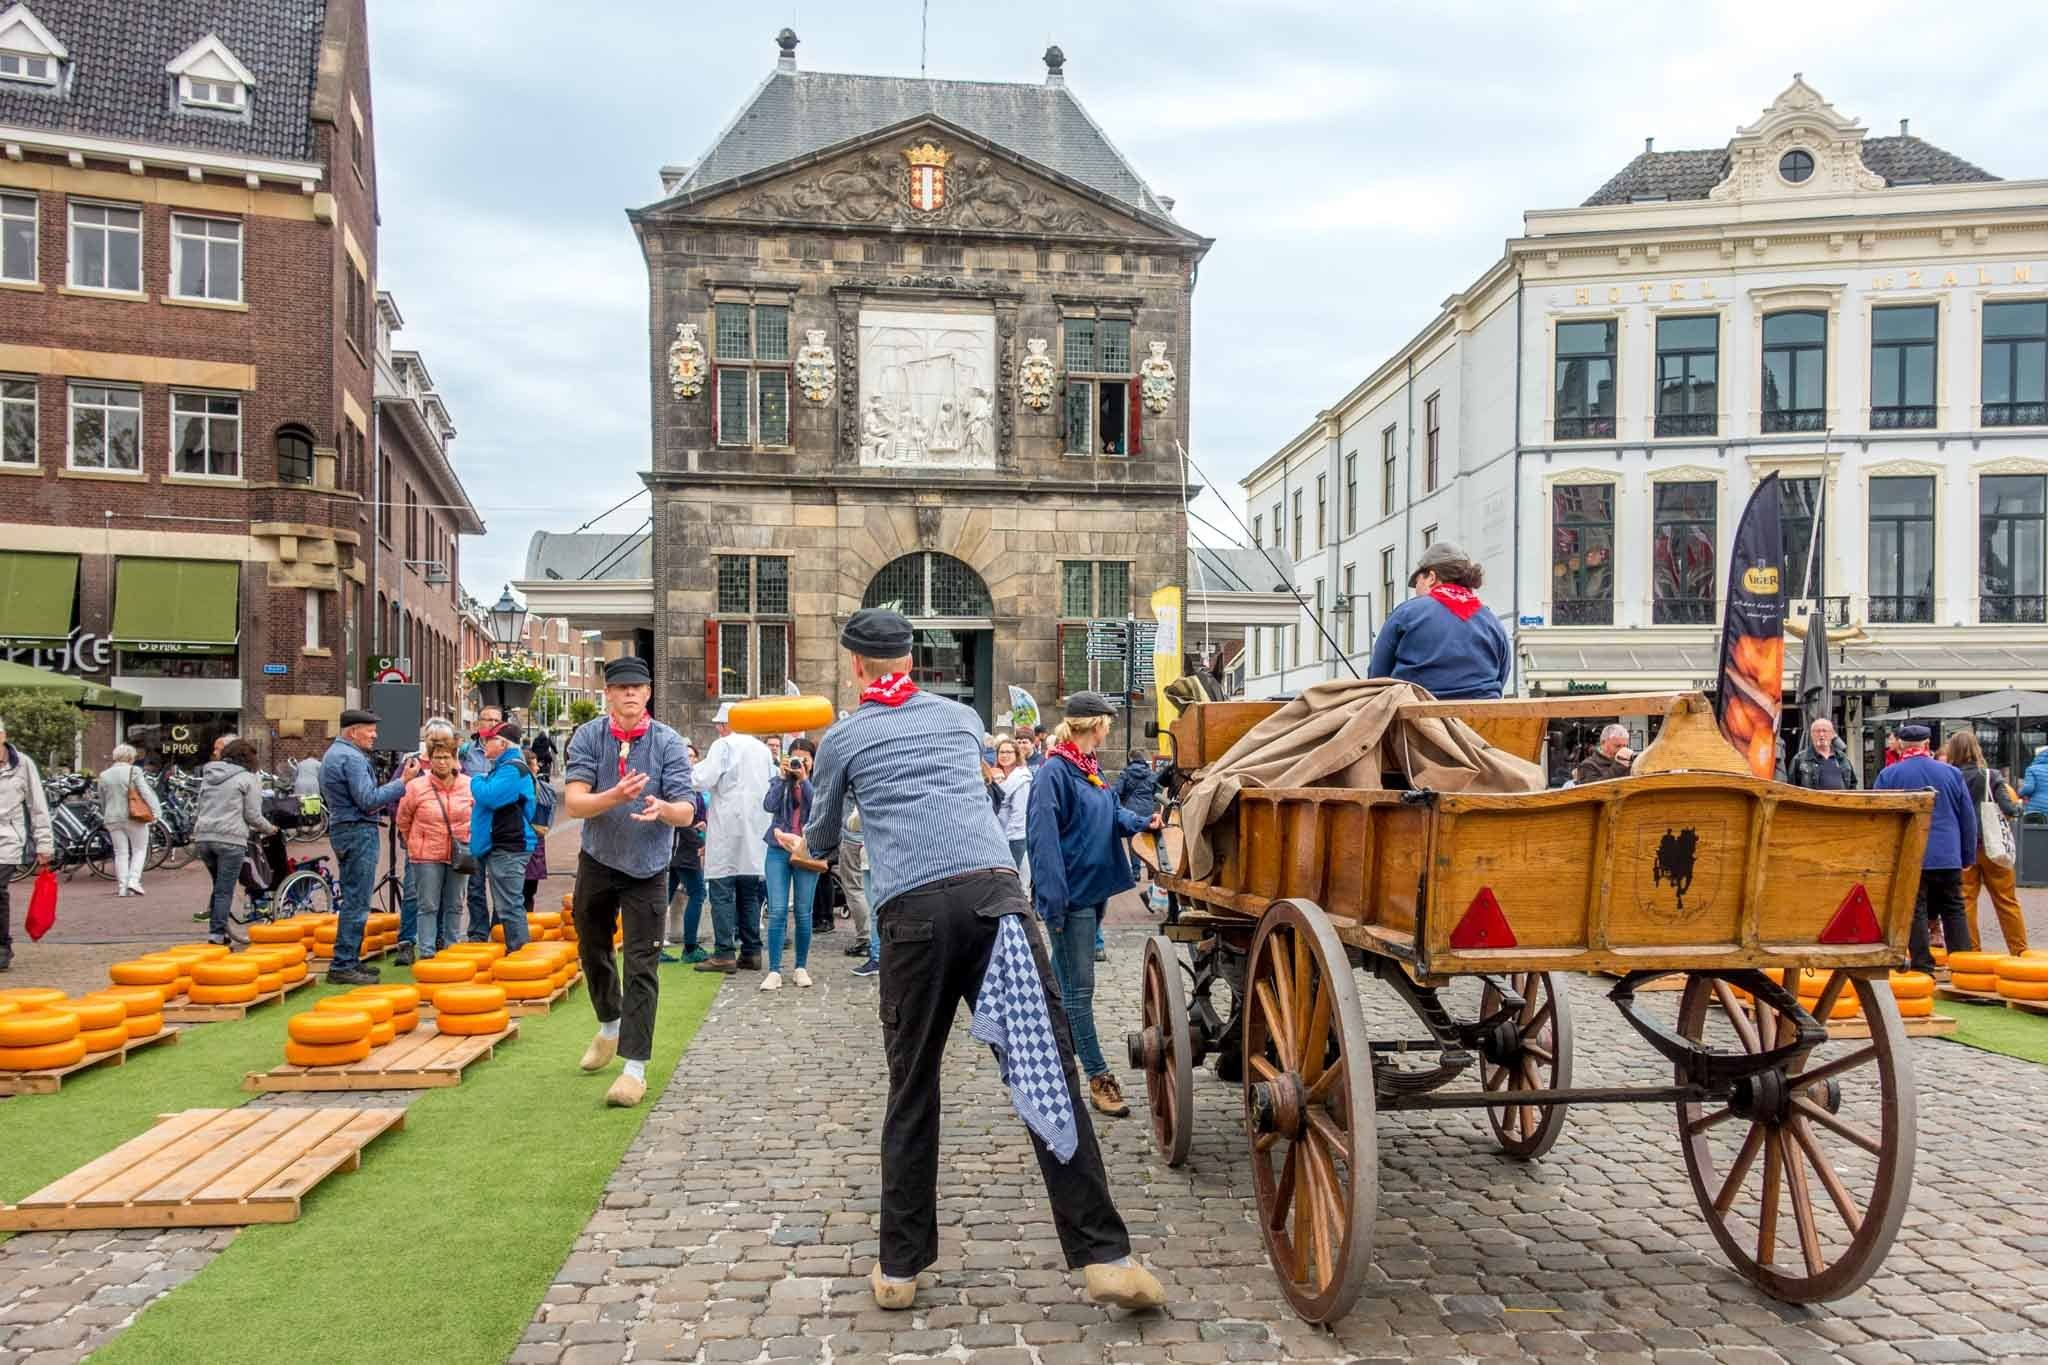 The Gouda Cheese Market re-enacting the sale of the town's namesake cheese